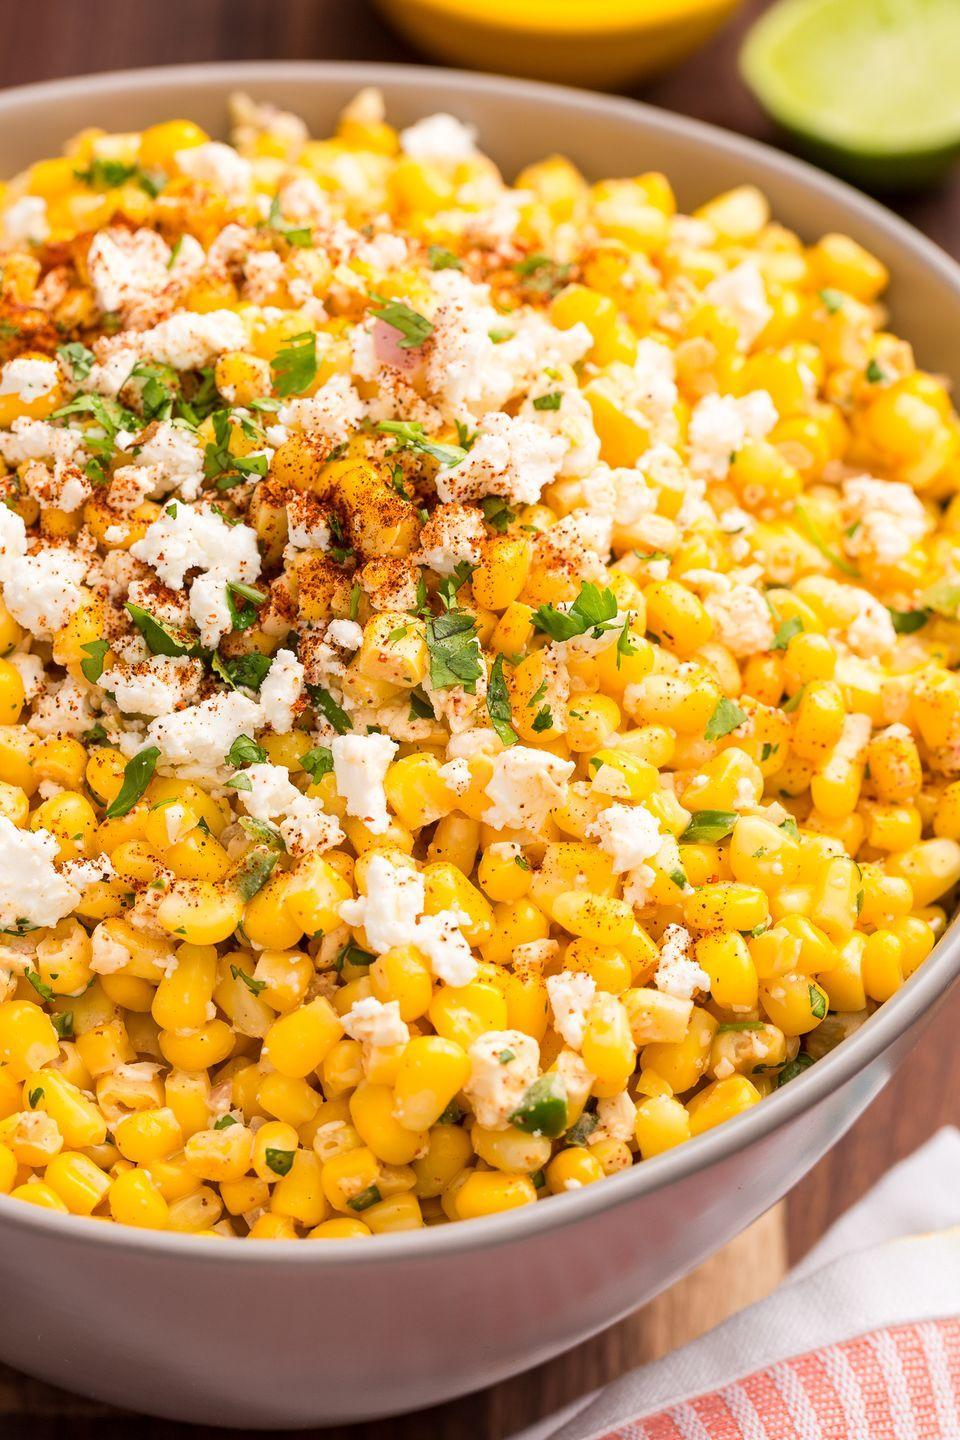 "<p>Mexican street-style corn meets corn salad in the best way.</p><p>Get the recipe from <a href=""/cooking/recipe-ideas/recipes/a43194/mexican-corn-salad-recipe/"" data-ylk=""slk:Delish"" class=""link rapid-noclick-resp"">Delish</a>.</p>"